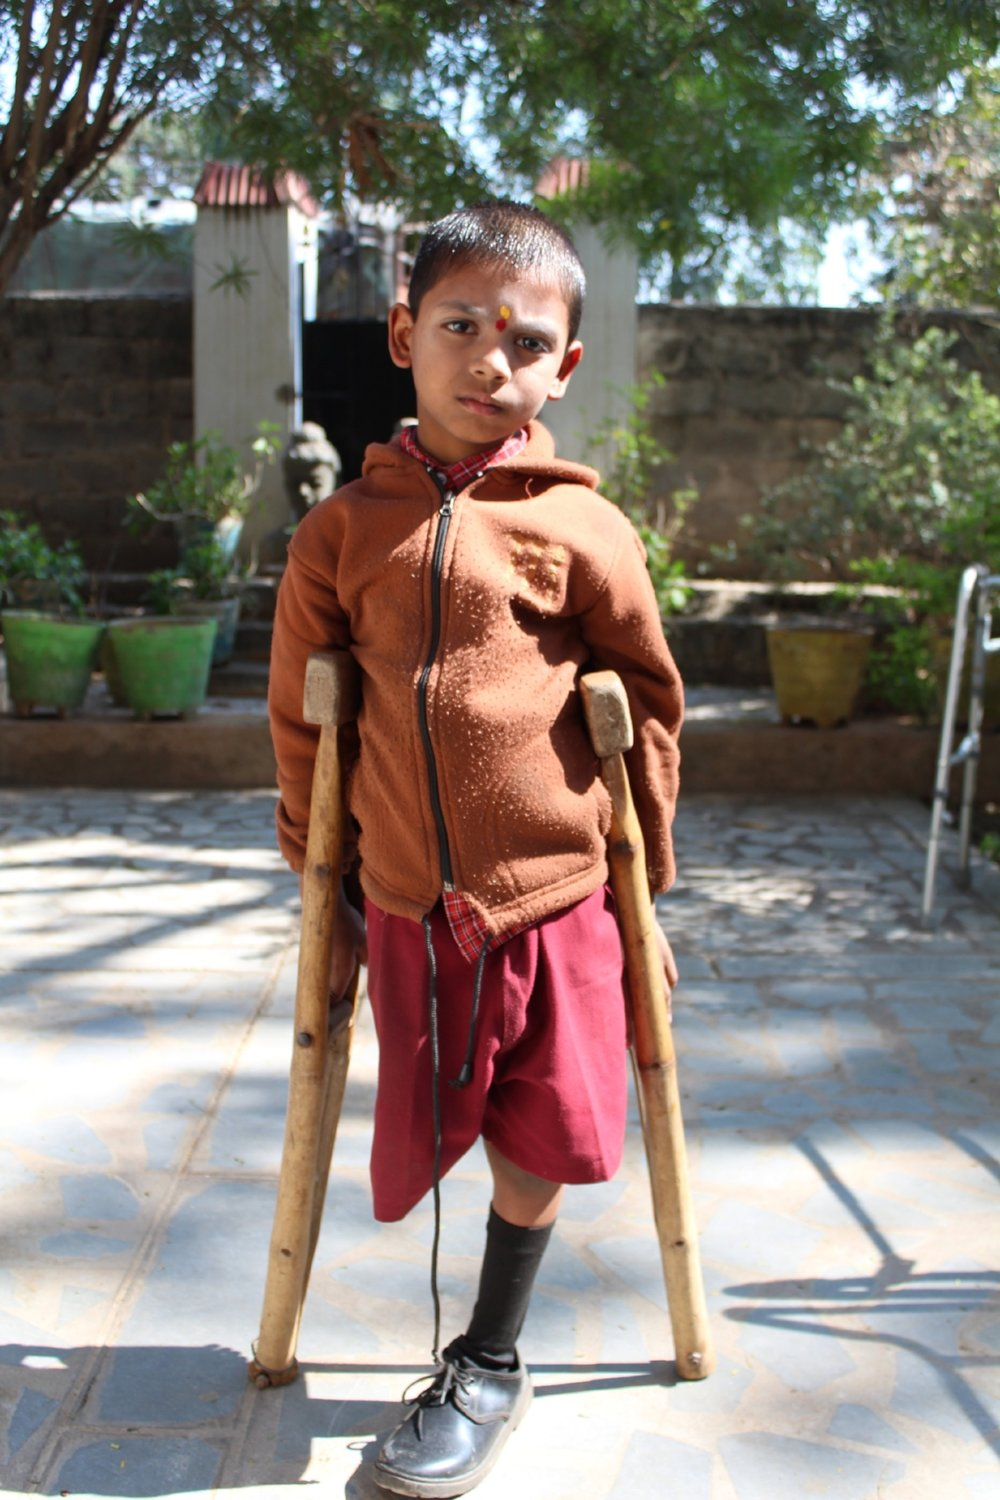 A child in need of new crutches in Hyderabad, India (Winter, 2017).